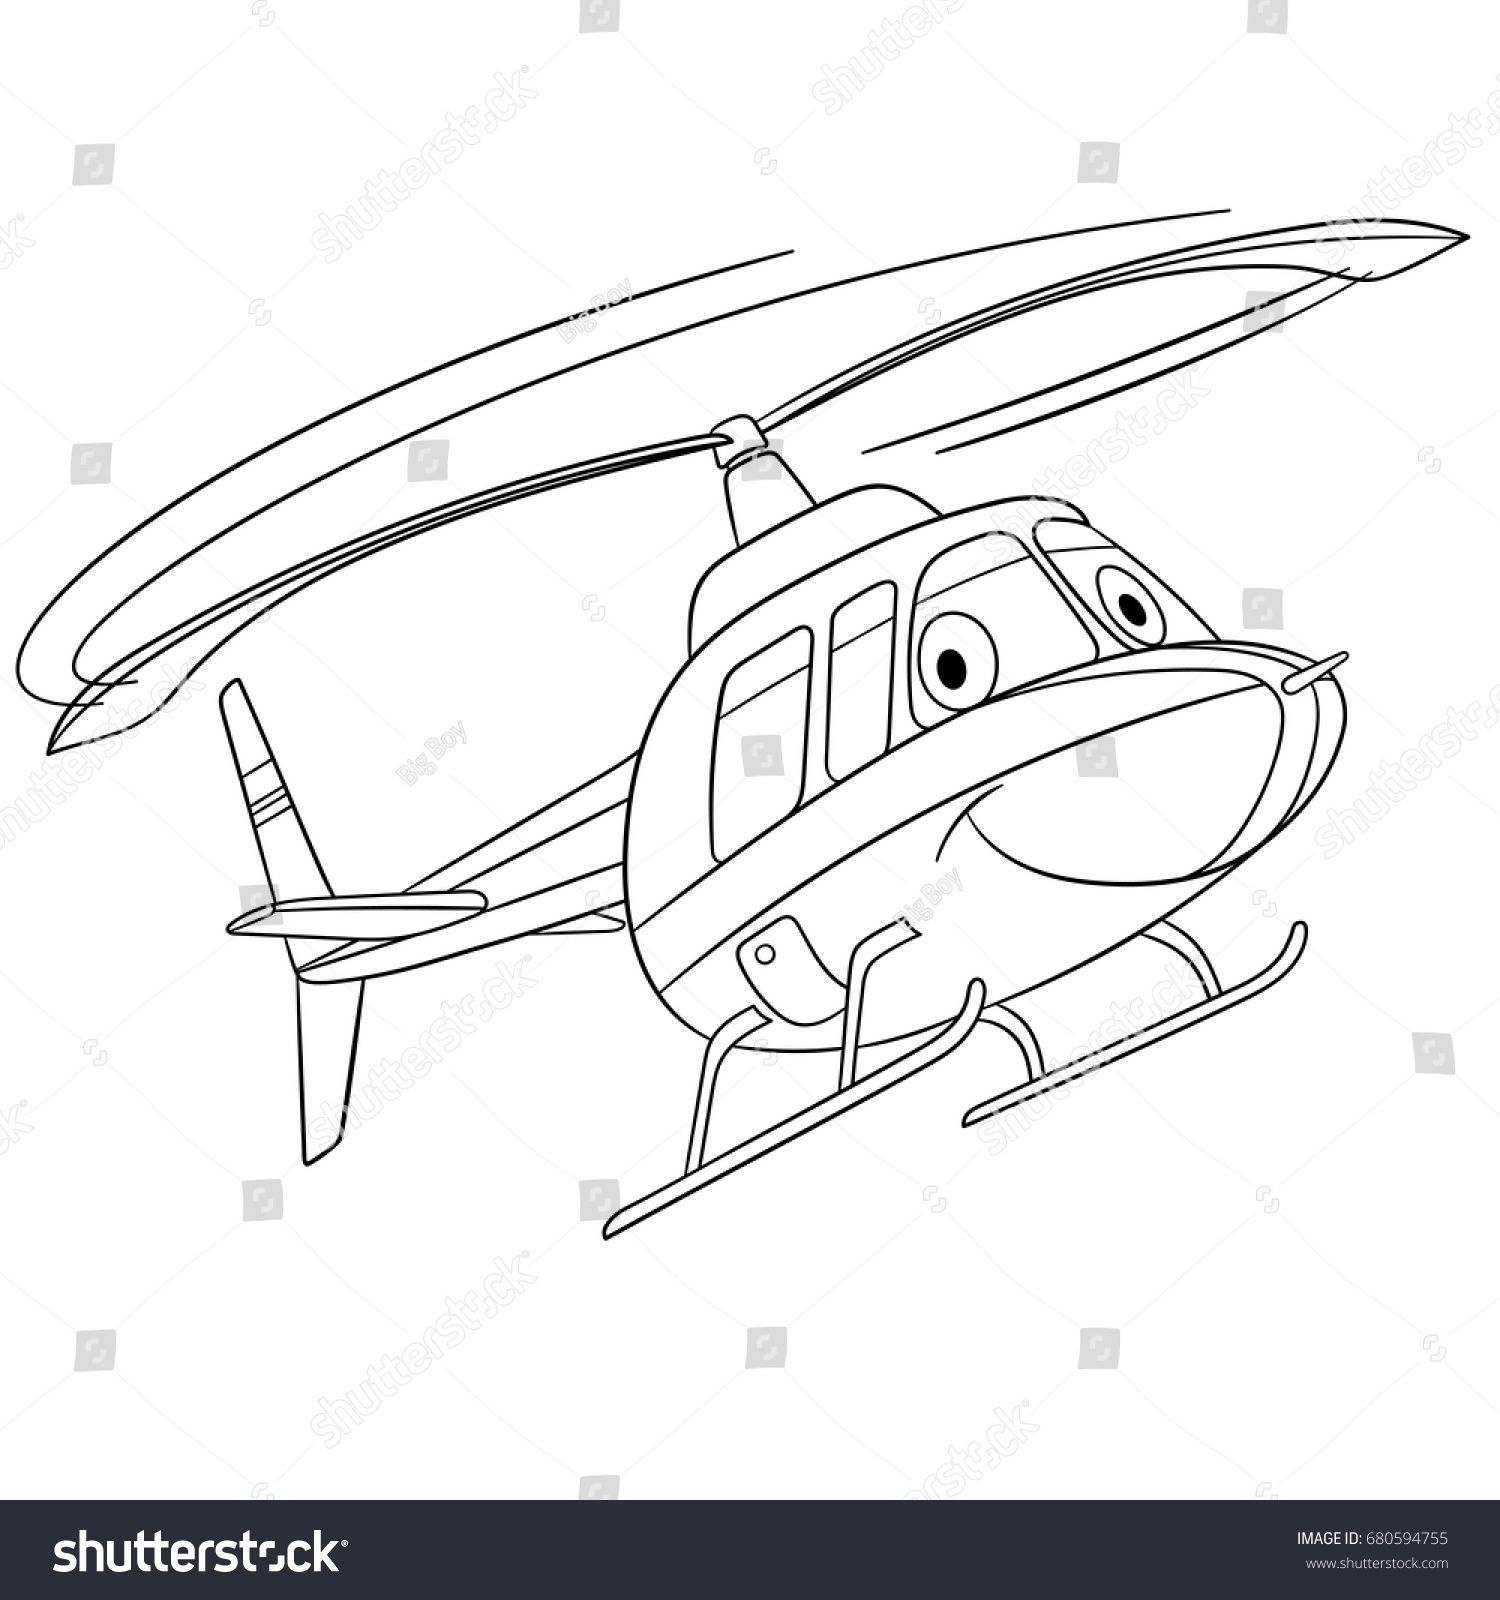 Coloring Page Of Helicopter Cartoon Flying Transport Colouring Book For Kids And Children Coloring Pages Cartoon Clip Art Kids Coloring Books [ 1600 x 1500 Pixel ]